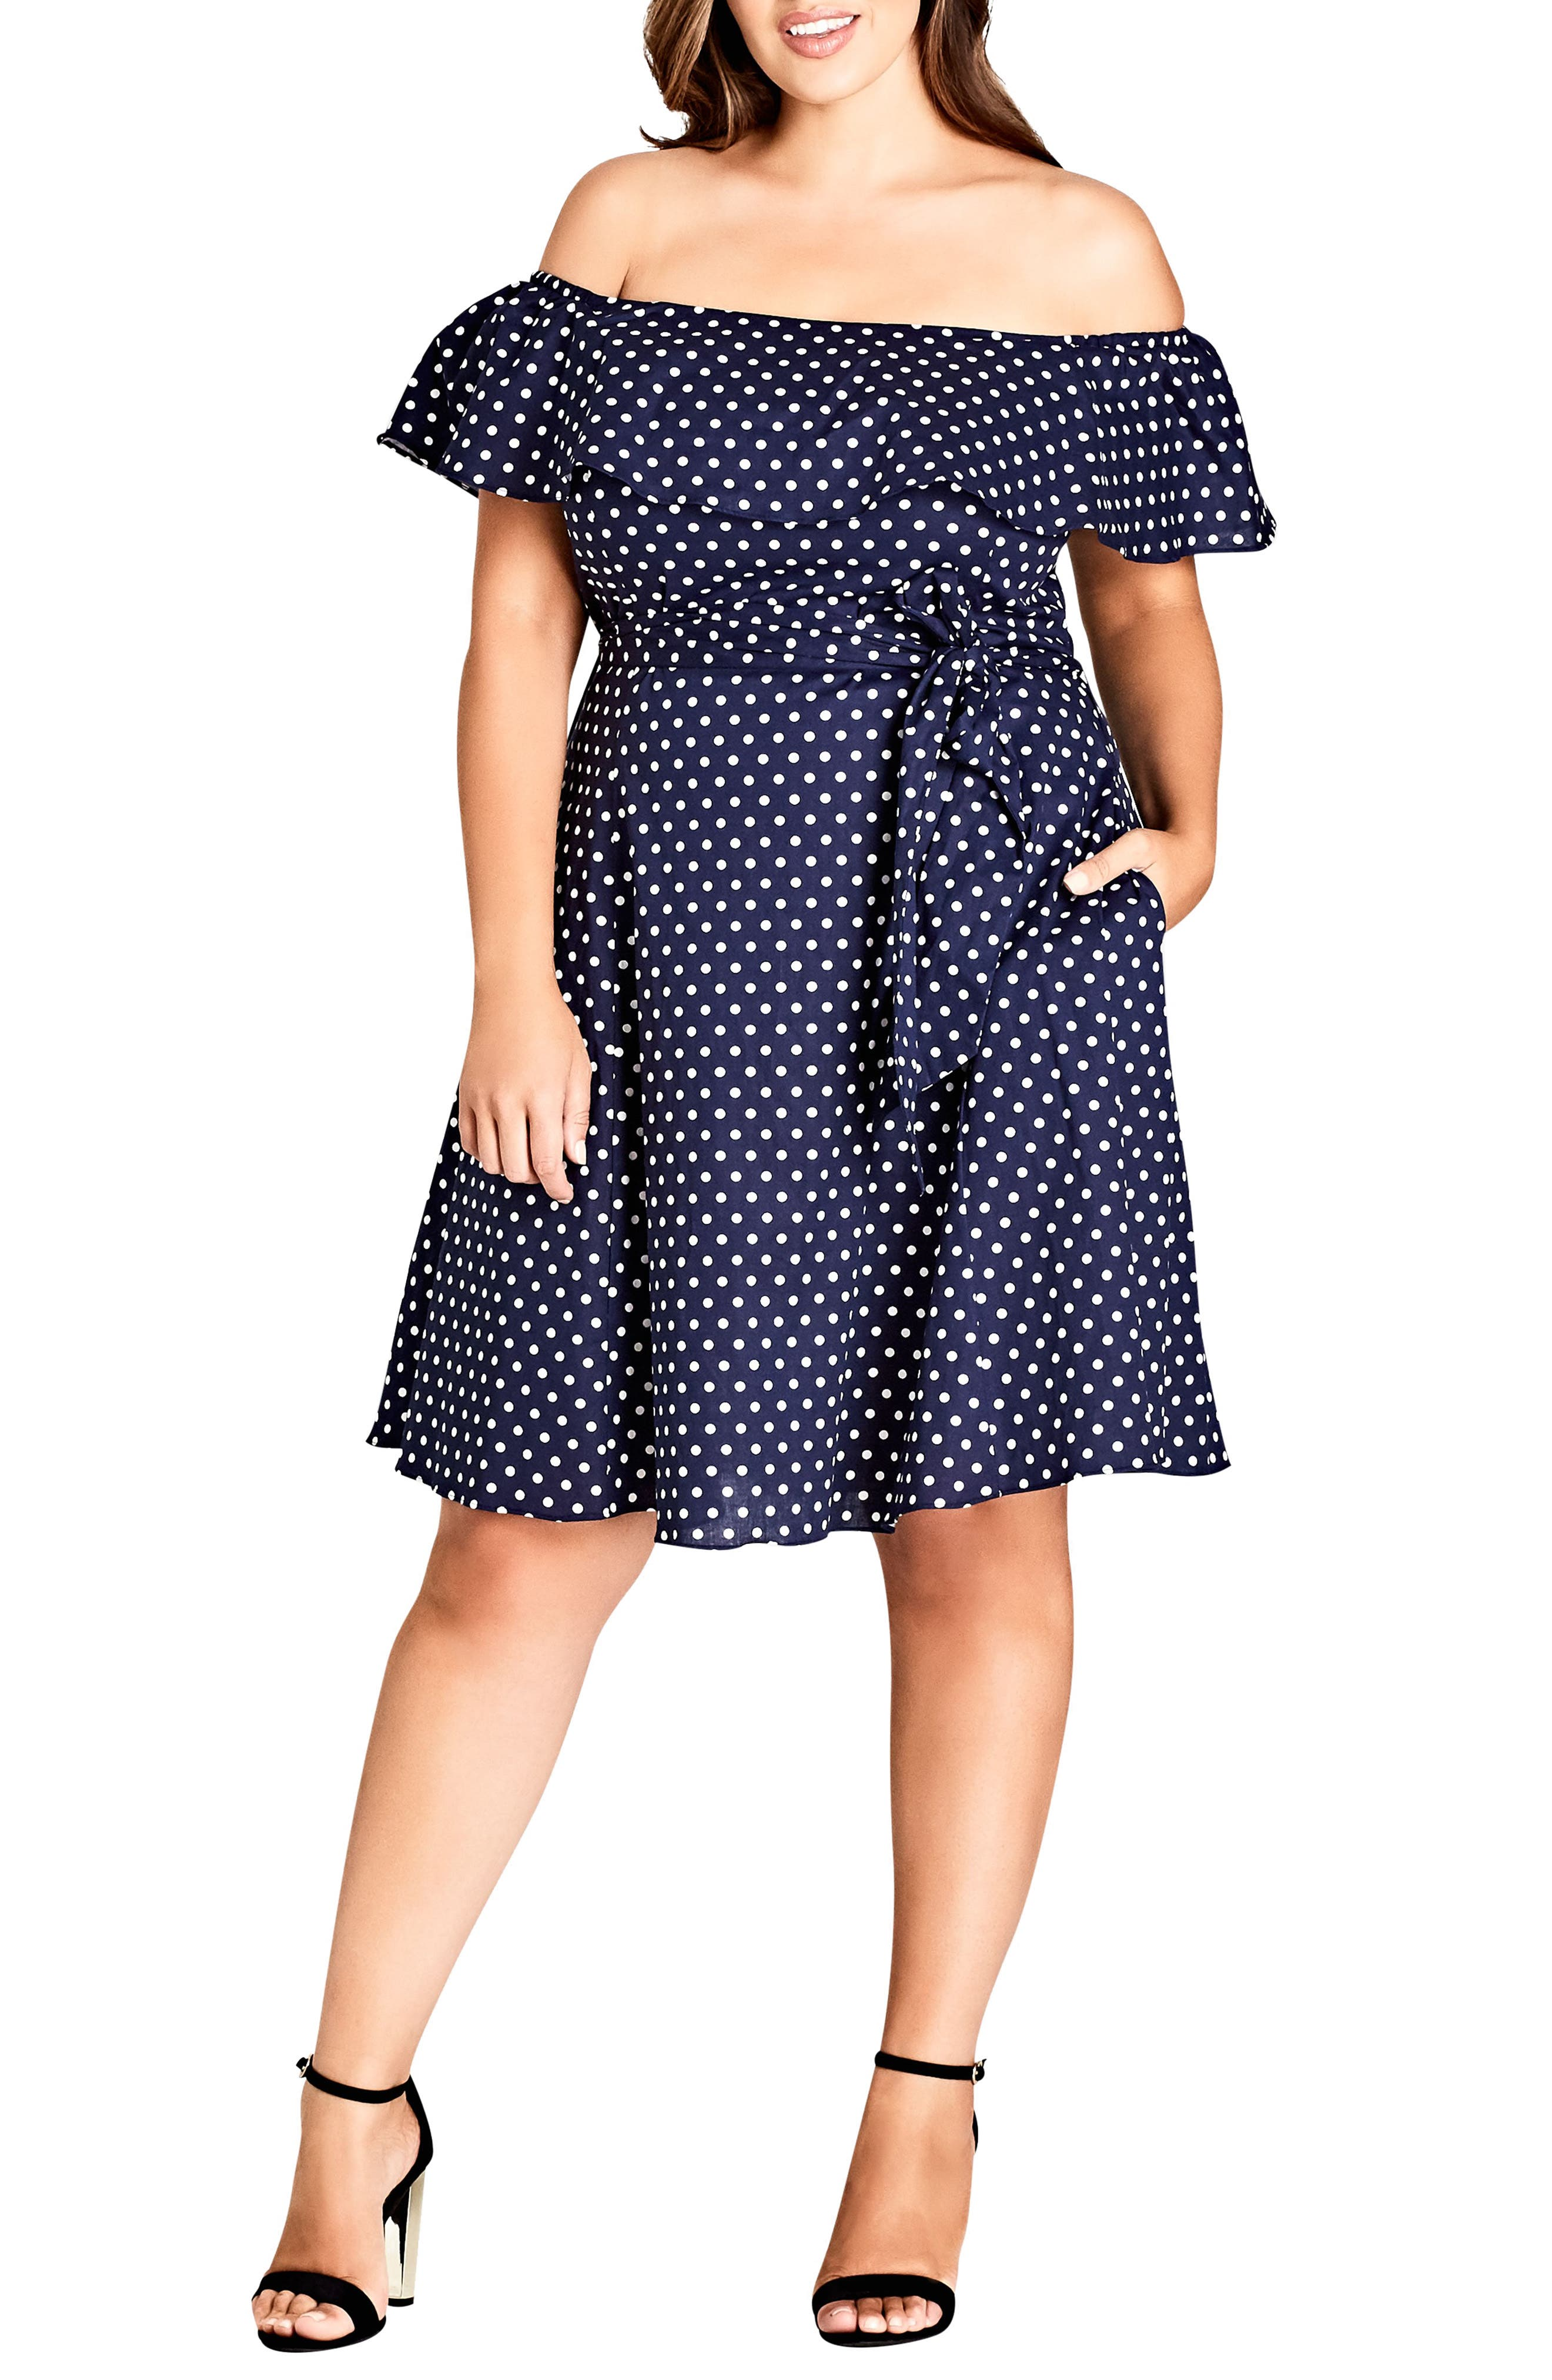 Sweet Off the Shoulder Fit & Flare Dress,                             Main thumbnail 1, color,                             Spot